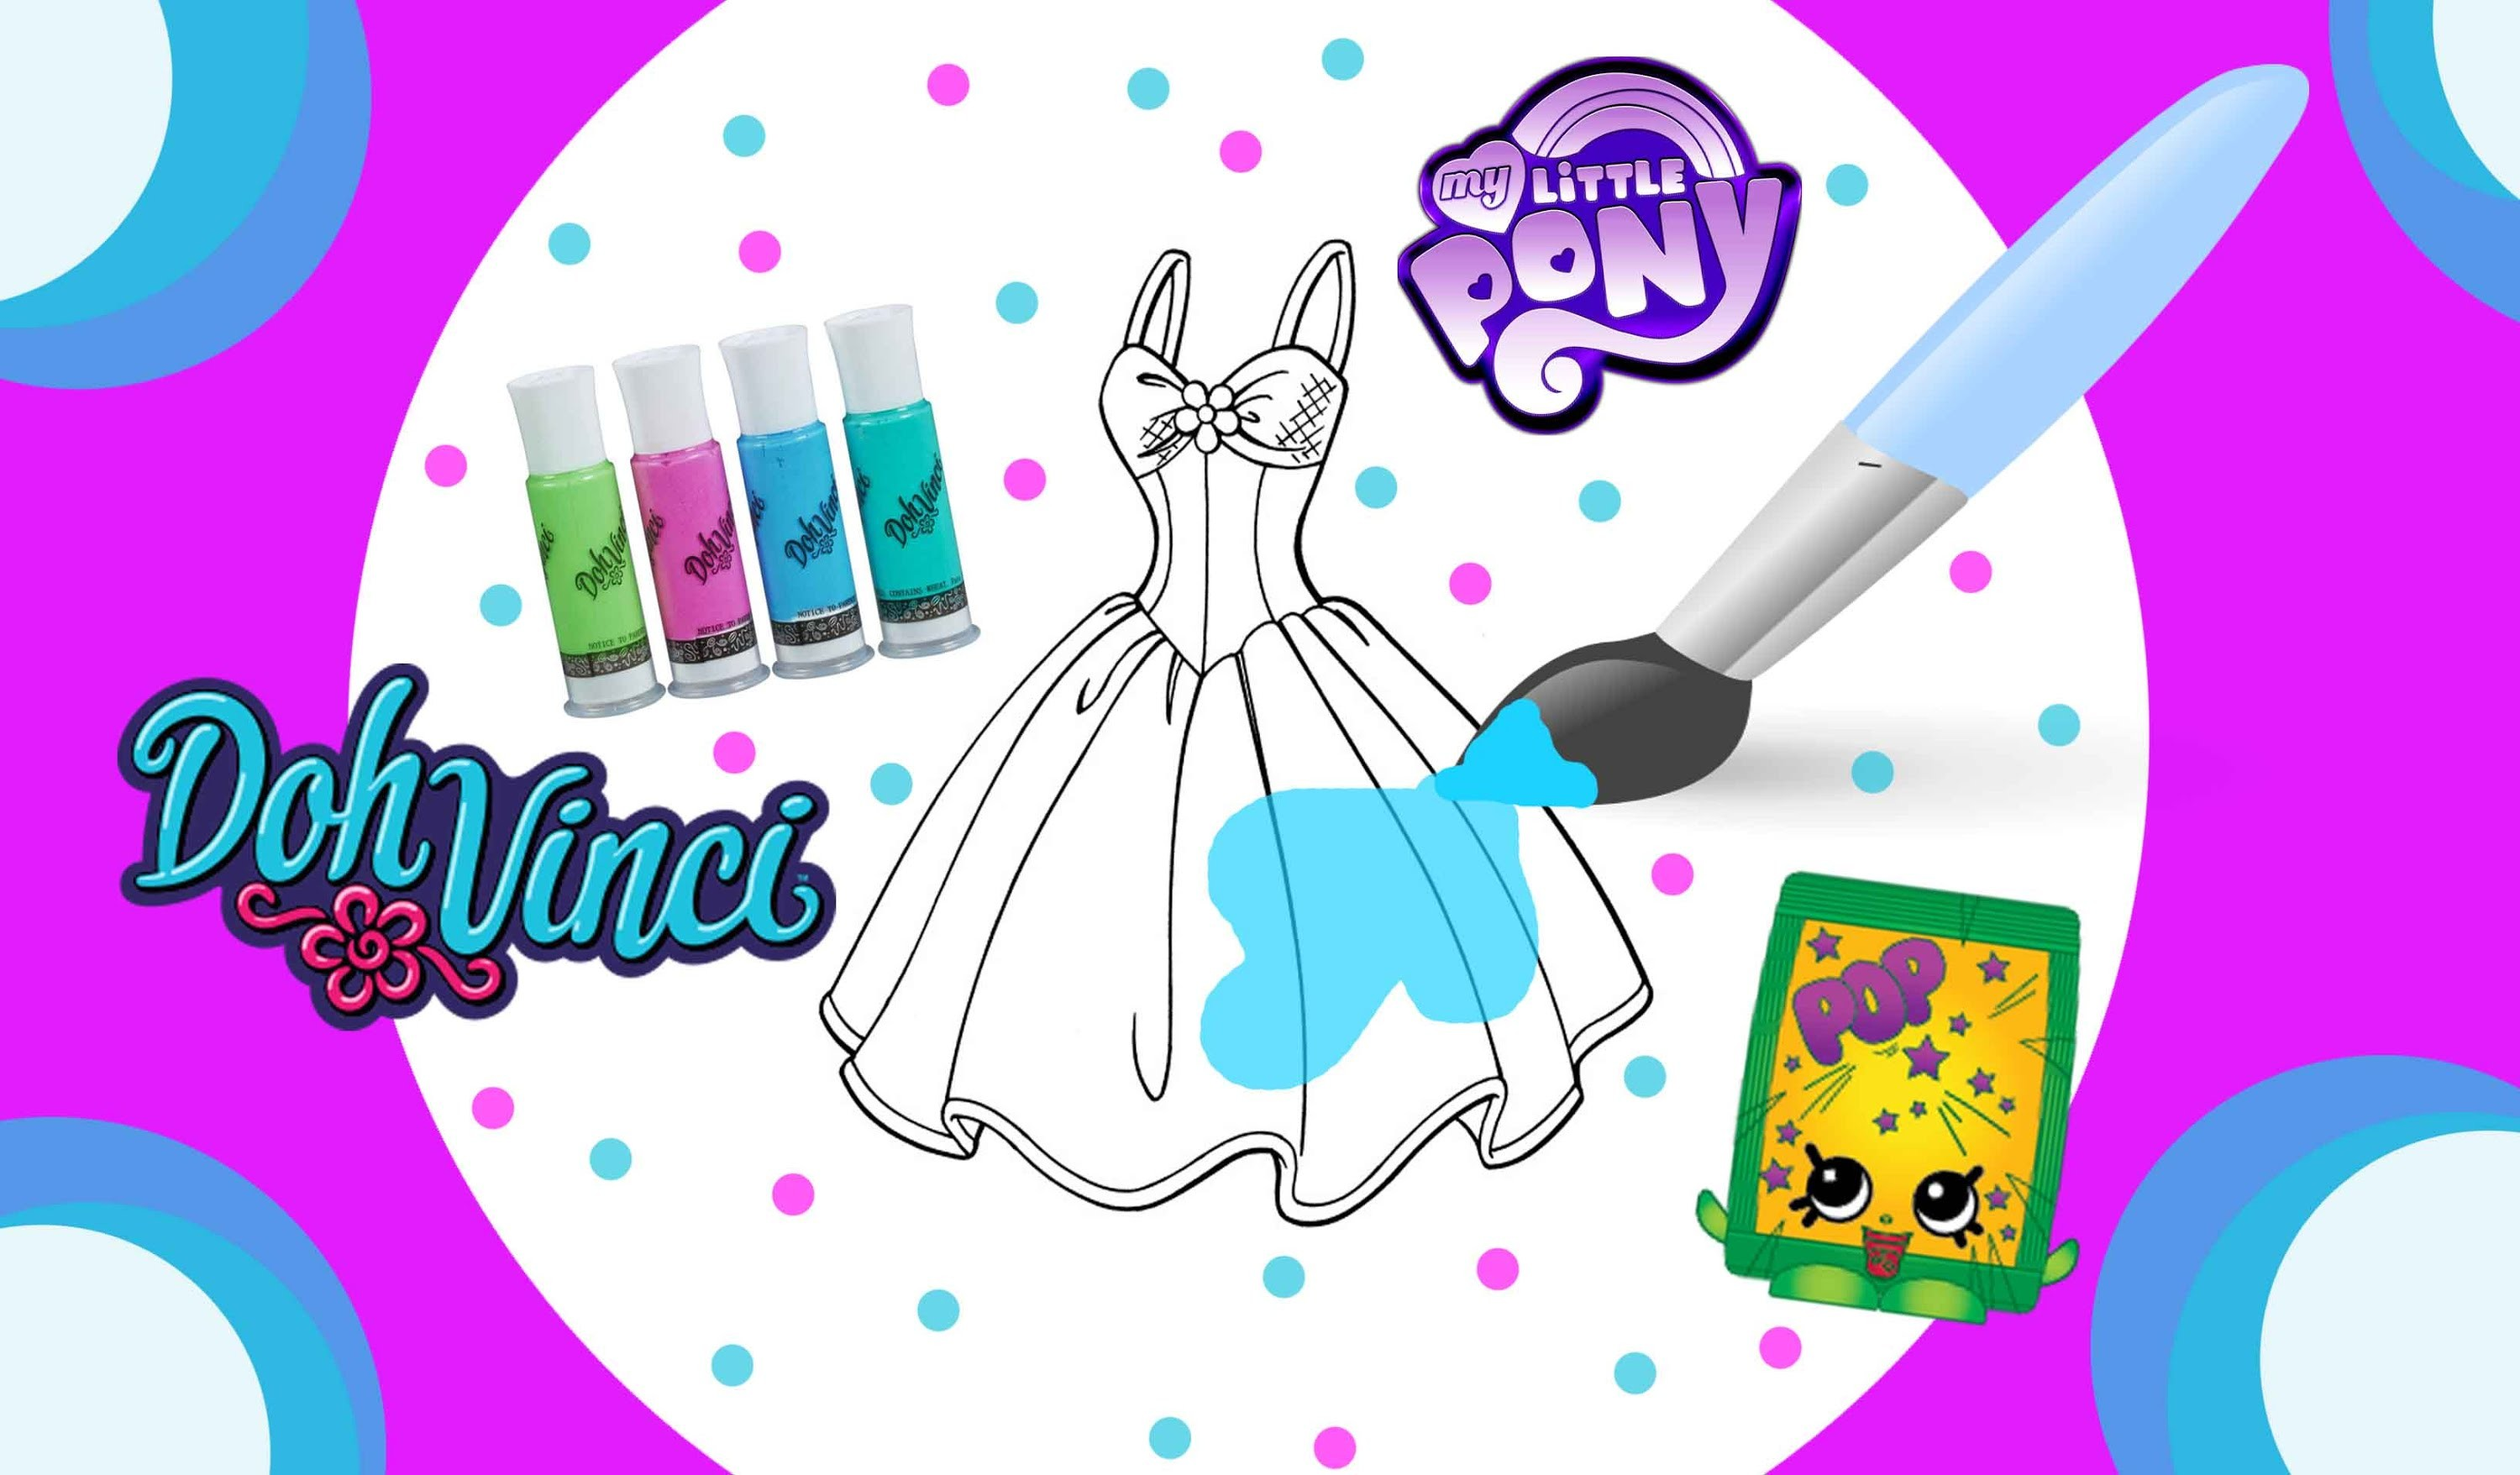 Color Your Own Fashionista DIY Using DohVinci PlayDoh Glitter & Paint Plus Shopkins MLP Toy Surprise